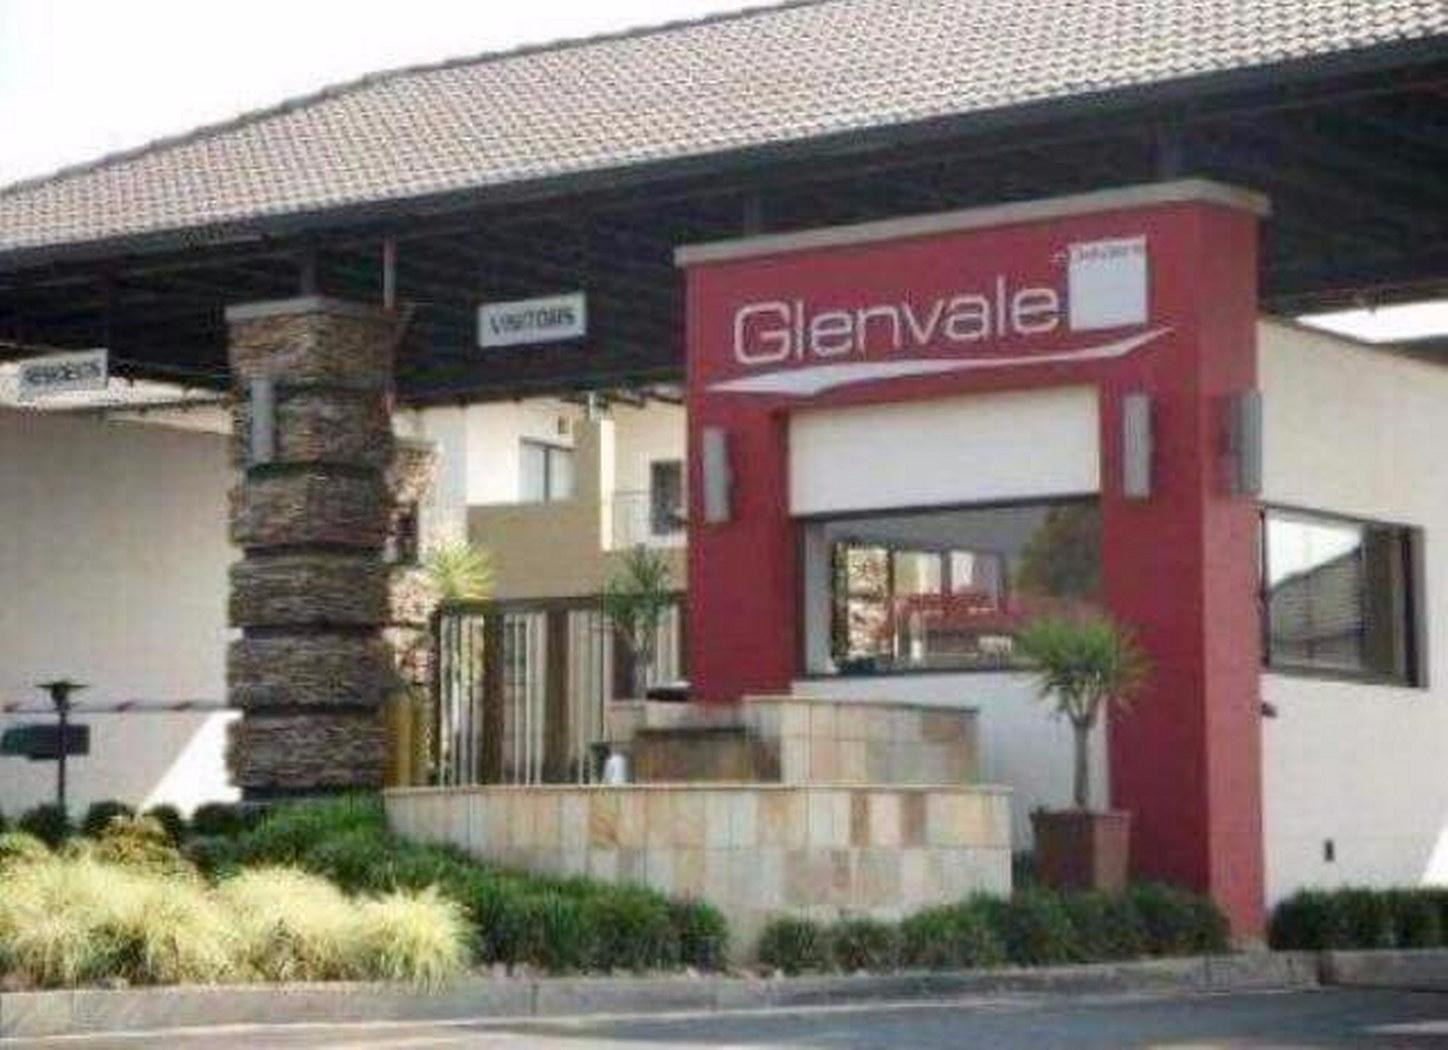 Johannesburg, Gleneagles Property  | Houses For Sale Gleneagles, Gleneagles, Townhouse 3 bedrooms property for sale Price:1,280,000